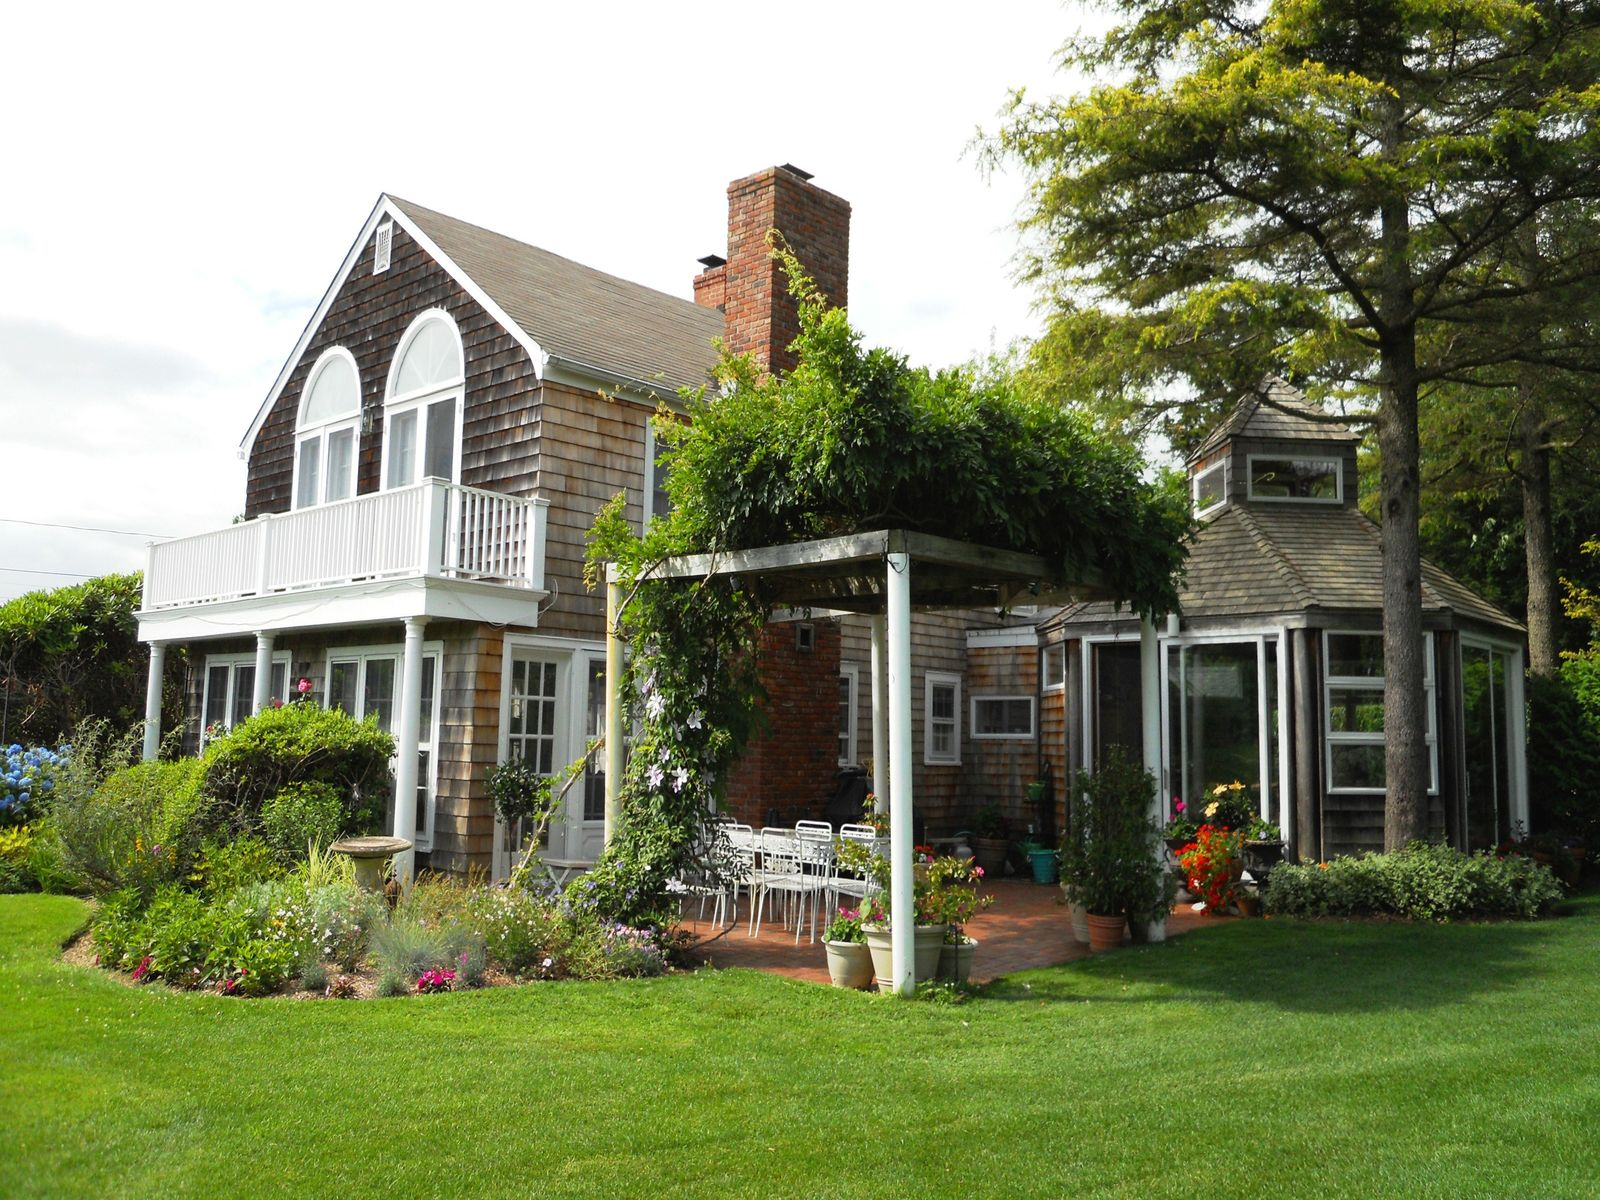 Late Summer Rental - Water Mill South, Water Mill NY Single Family Home - Hamptons Real Estate